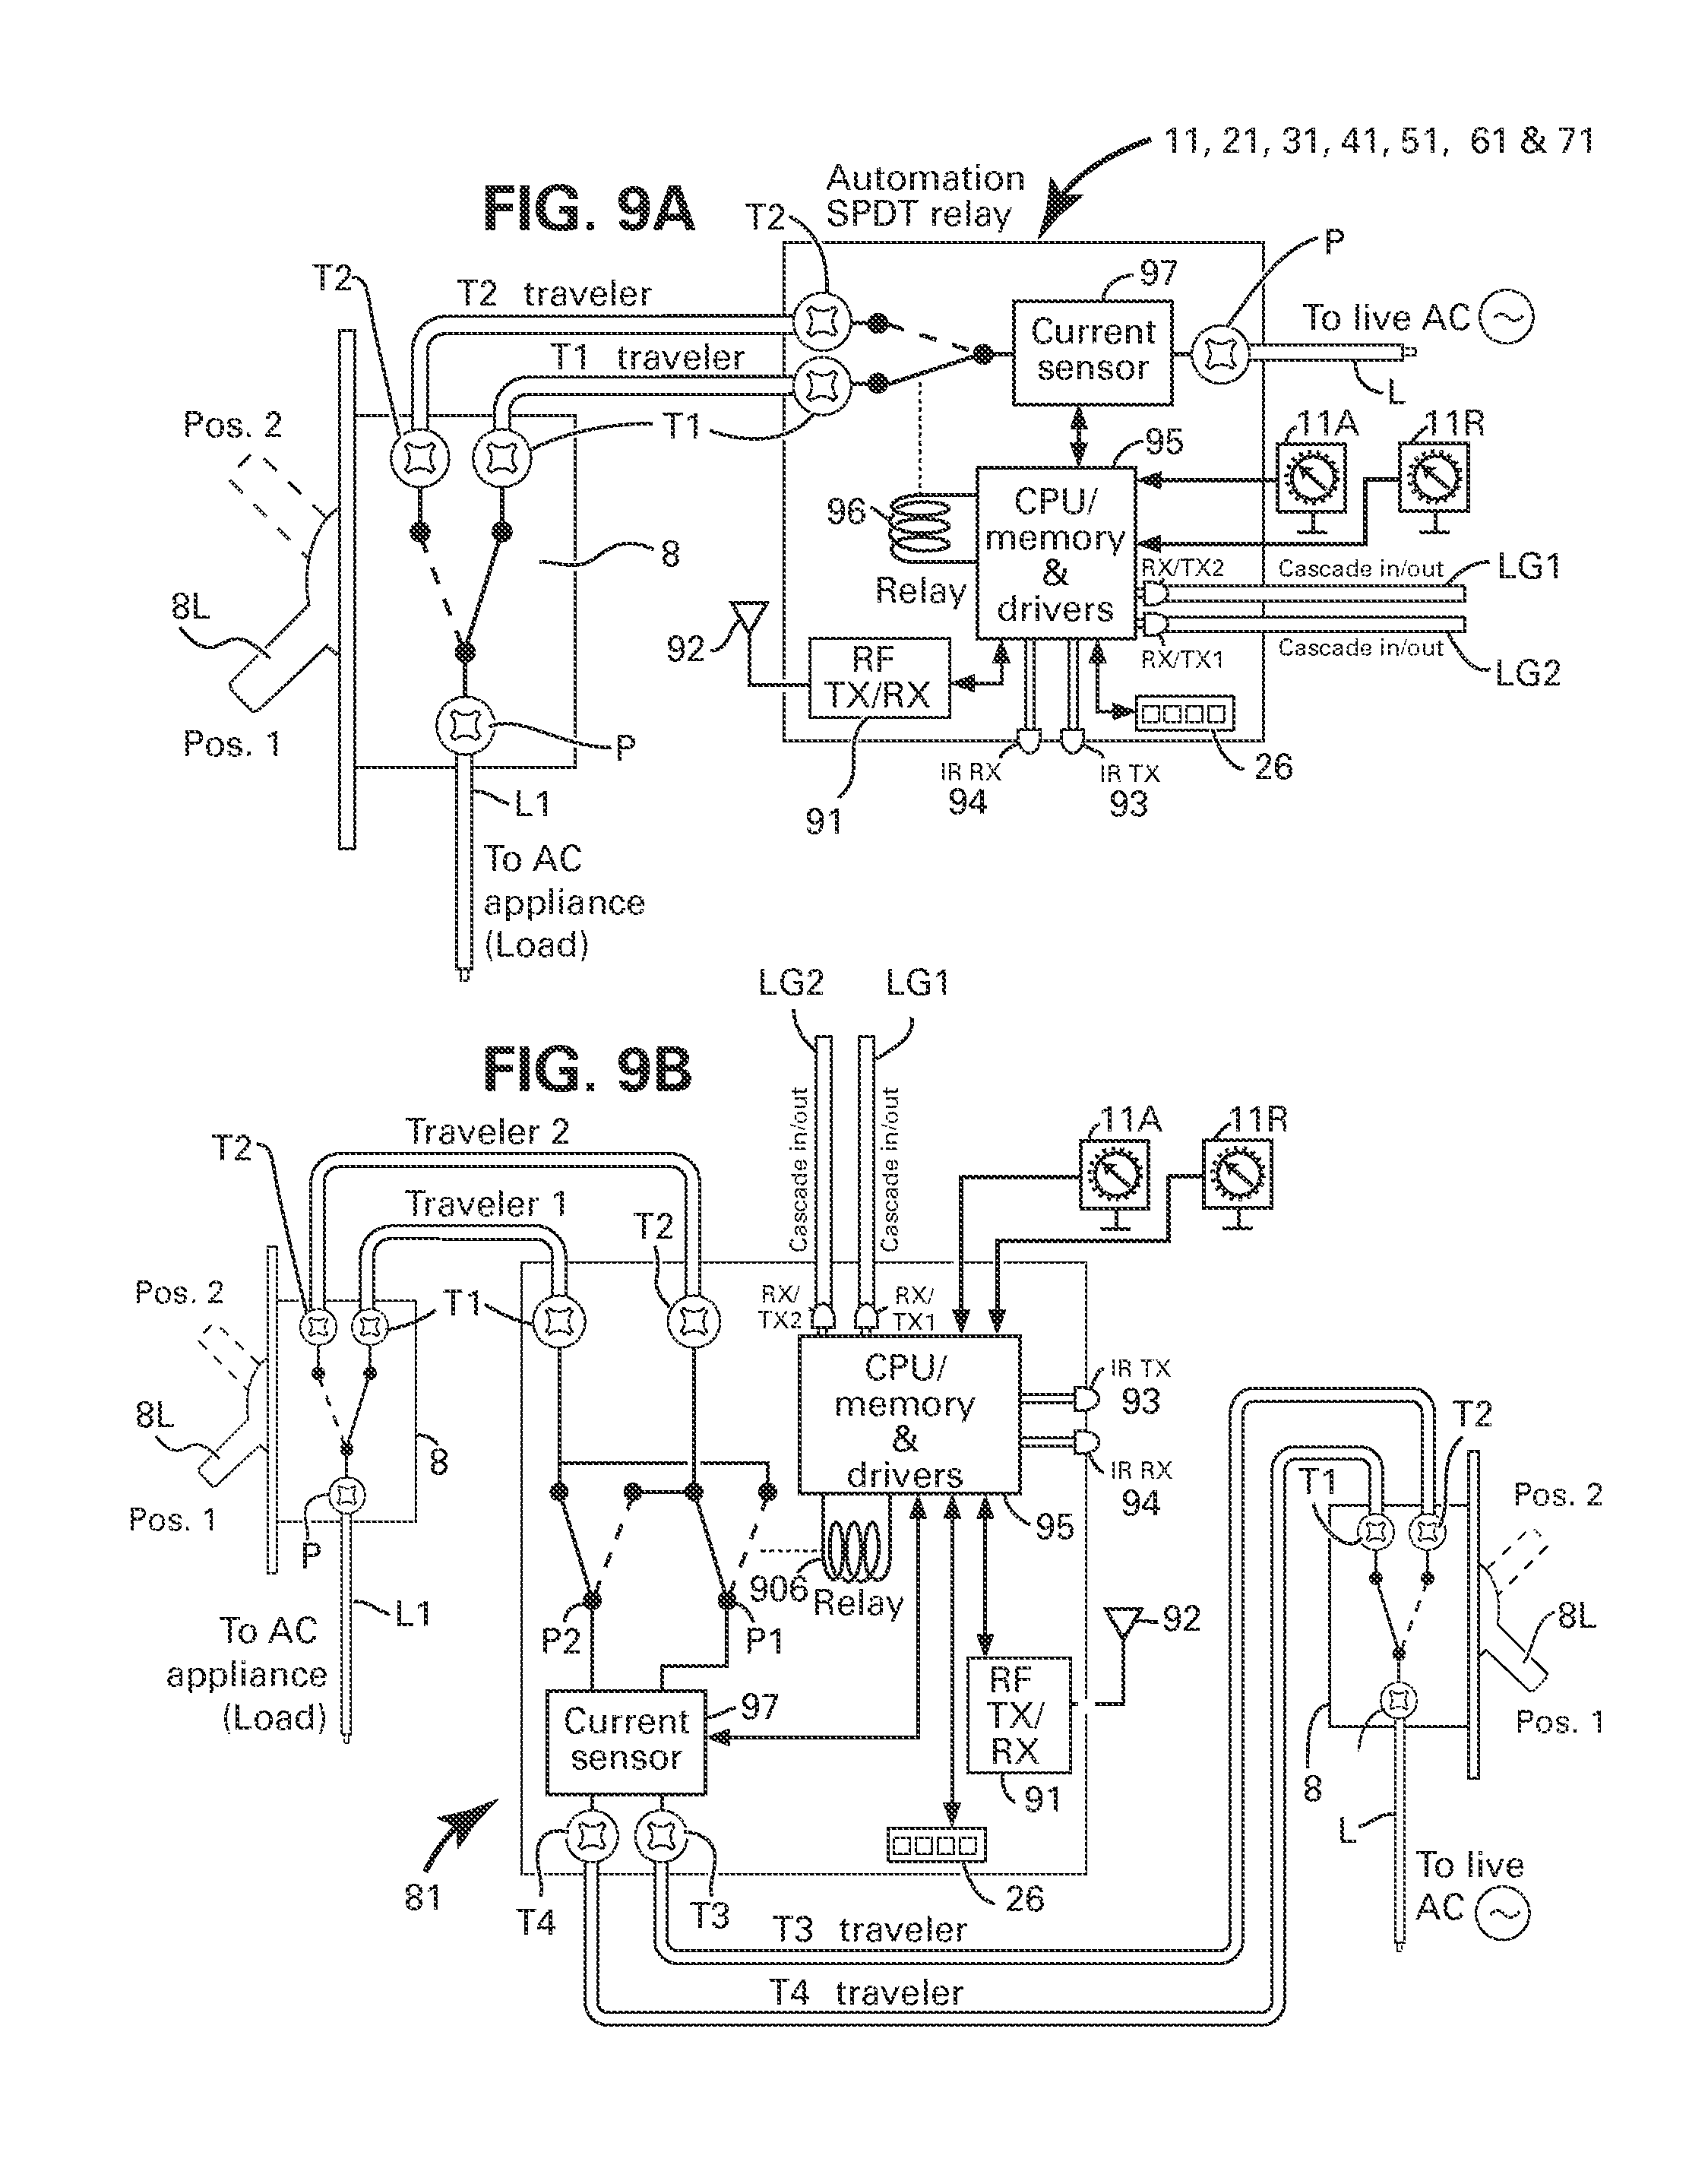 spdt diagram wiring diagram database 2-Way Light Switch Wiring Diagram patent us8384249 method and apparatus for bining ac power relay spdt schematic patent drawing